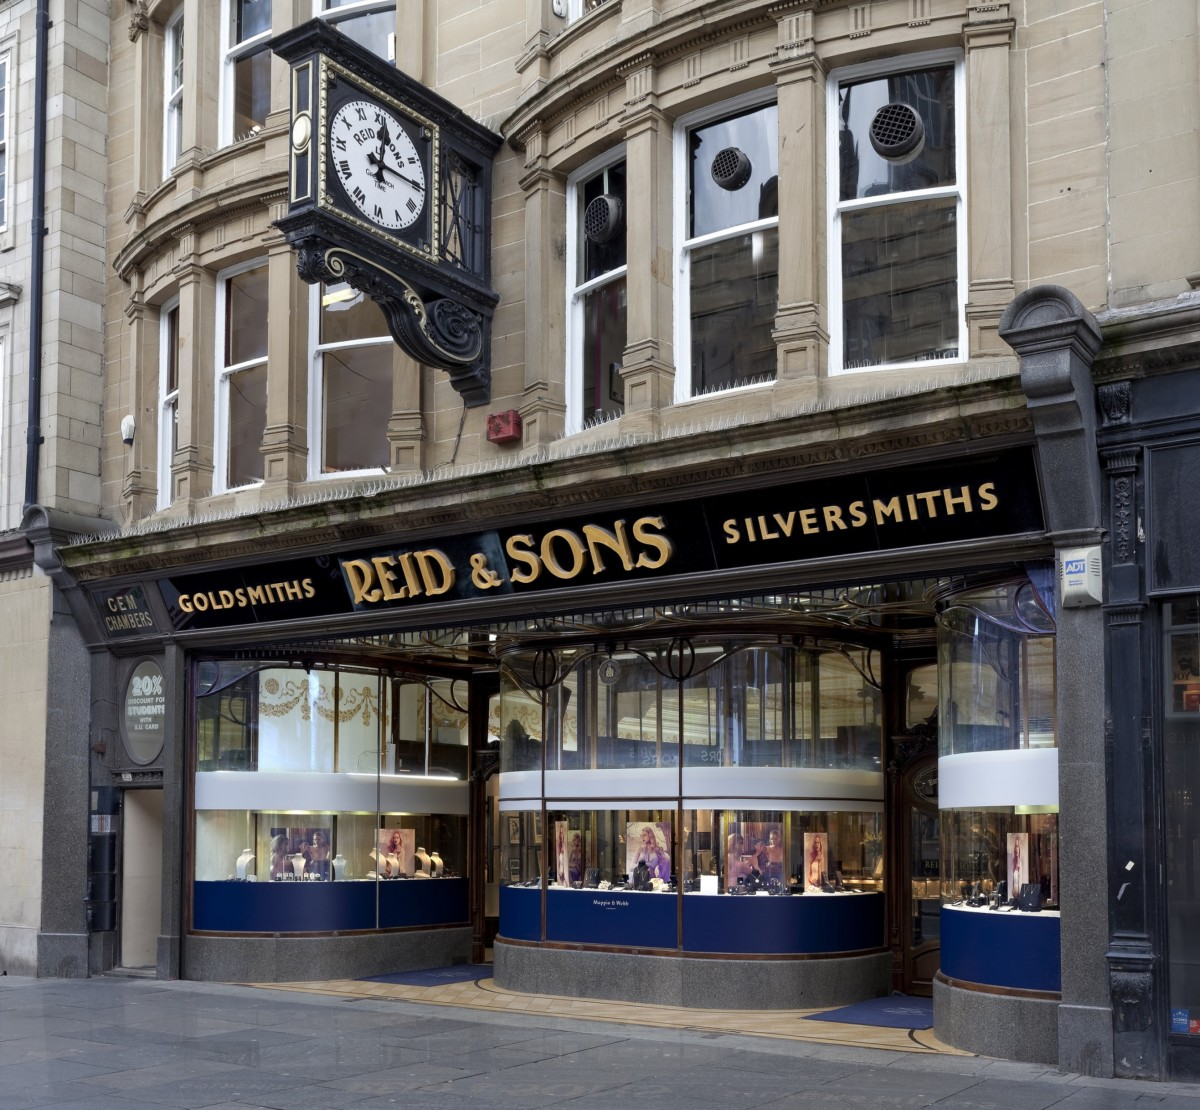 Historic-jewellers-Reid-Sons-on-Blackett-Street